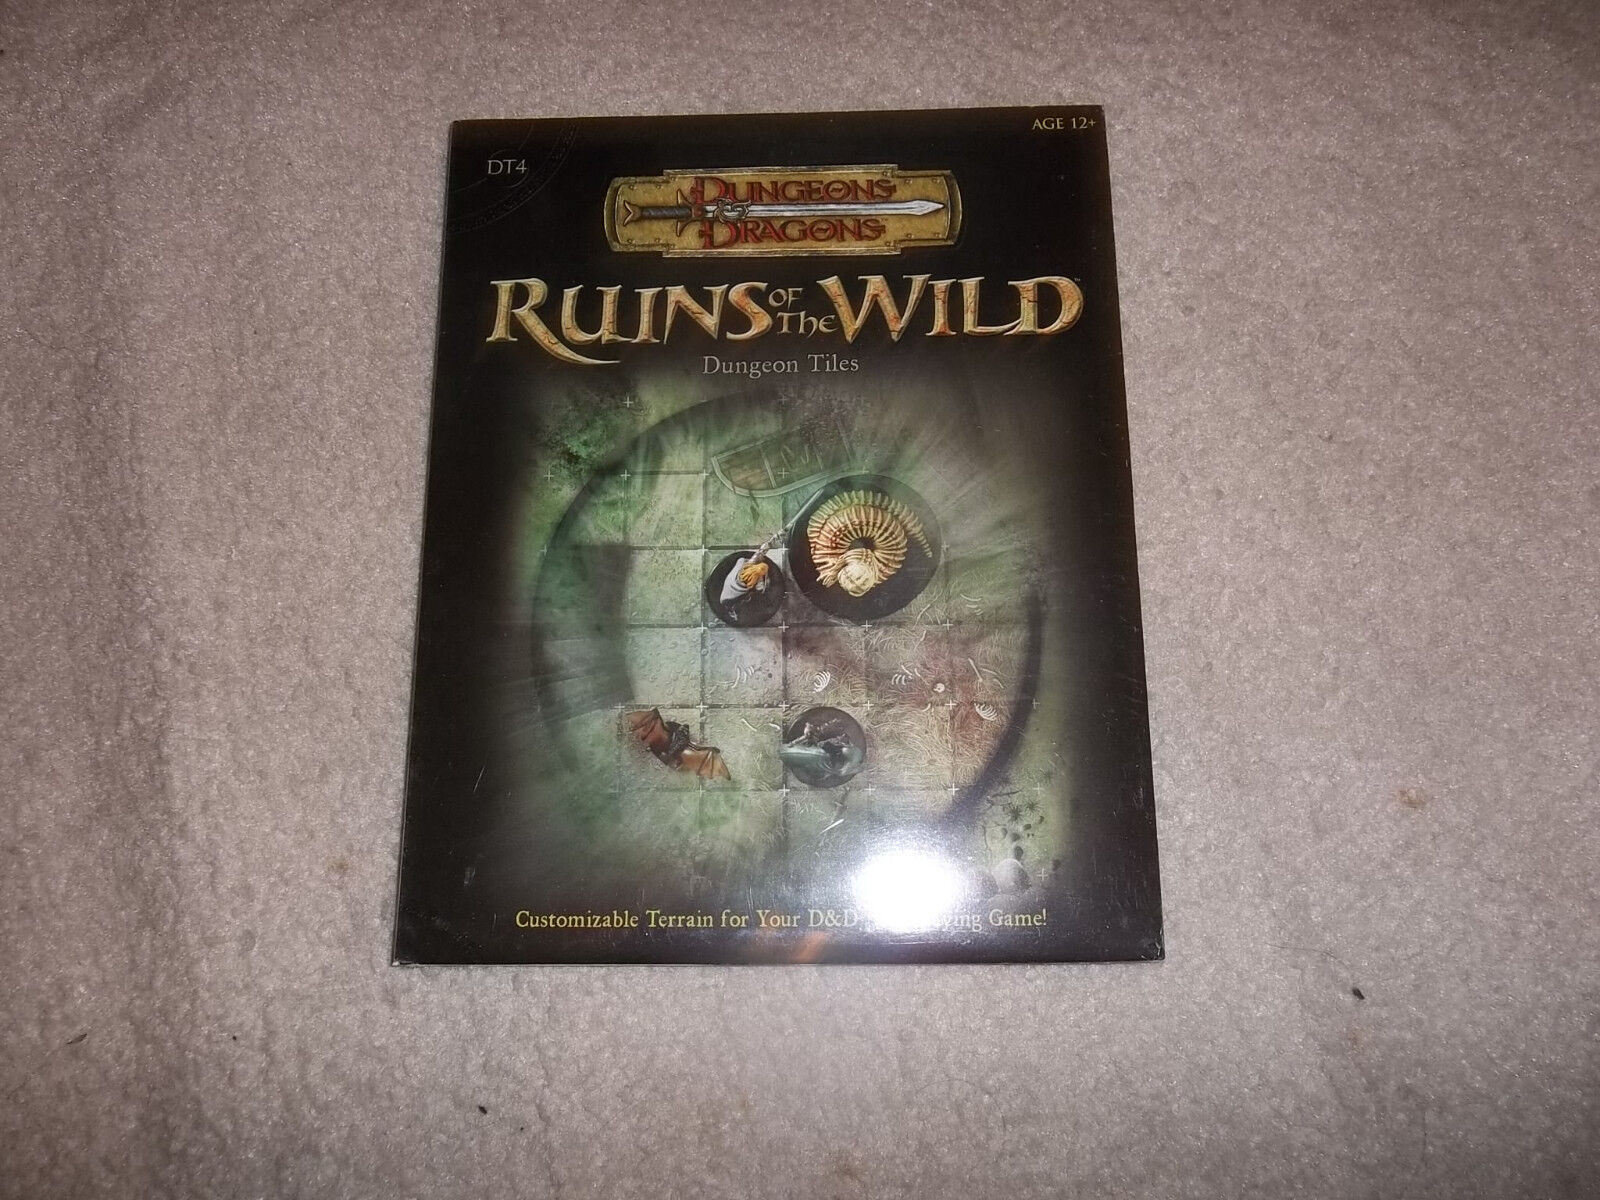 D&D D20 WOTC DT4 Dungeon Tiles Ruins of the Wild SW